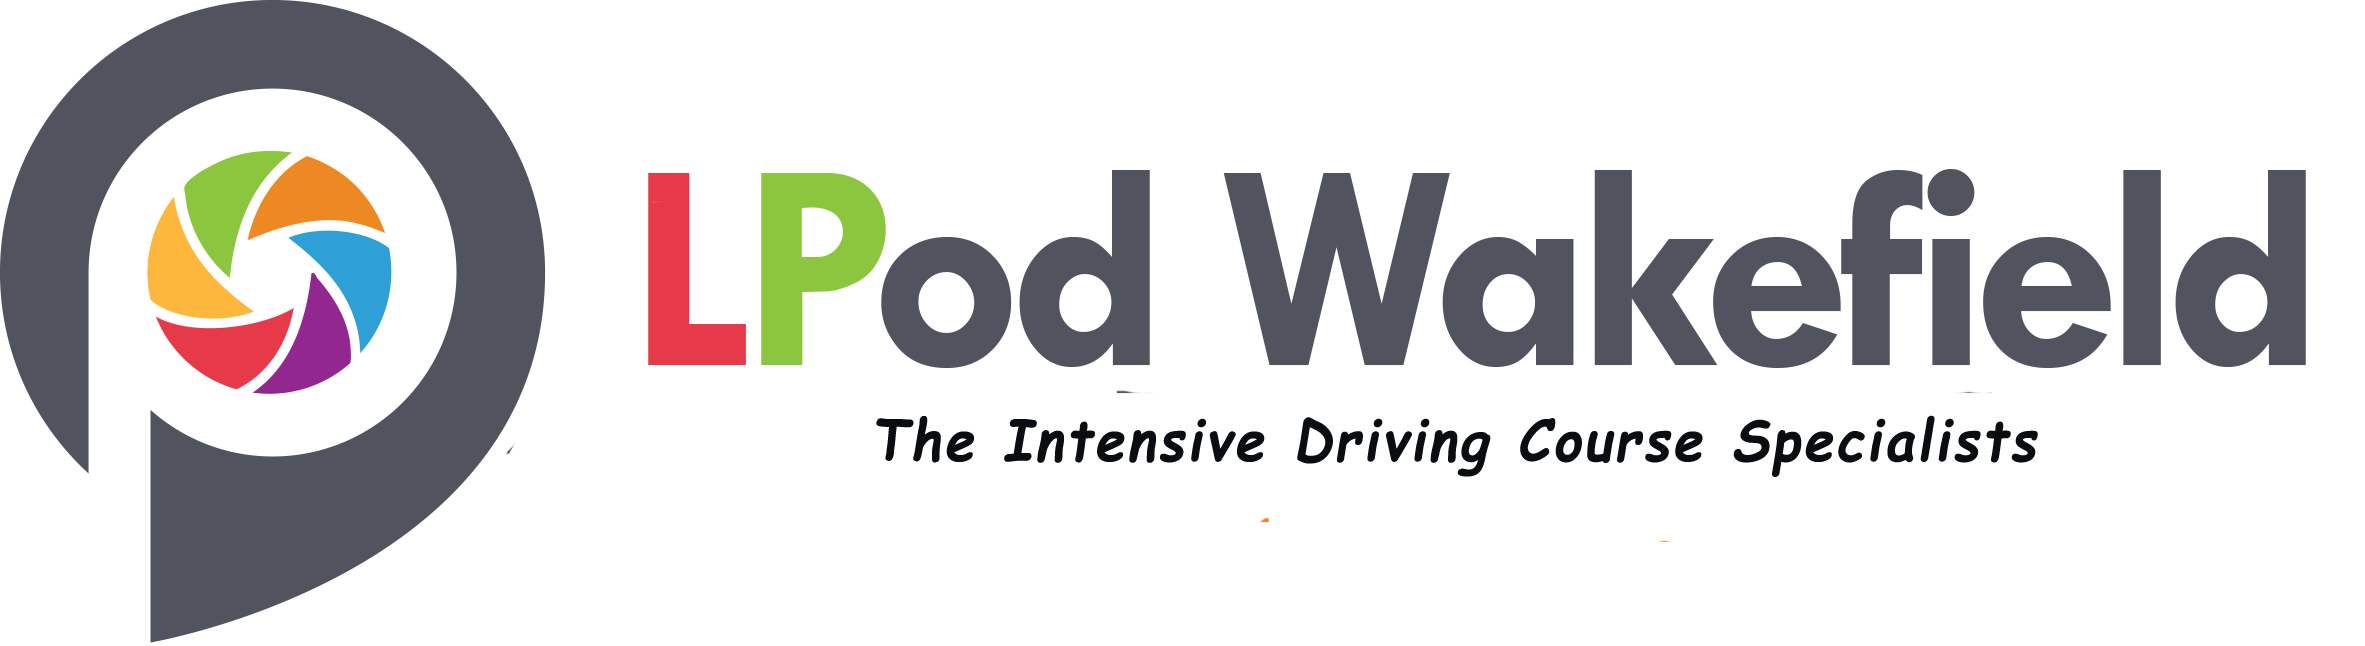 intensive driving courses wakefield, intensive driving lessons wakefield, intensive driving school wakefield